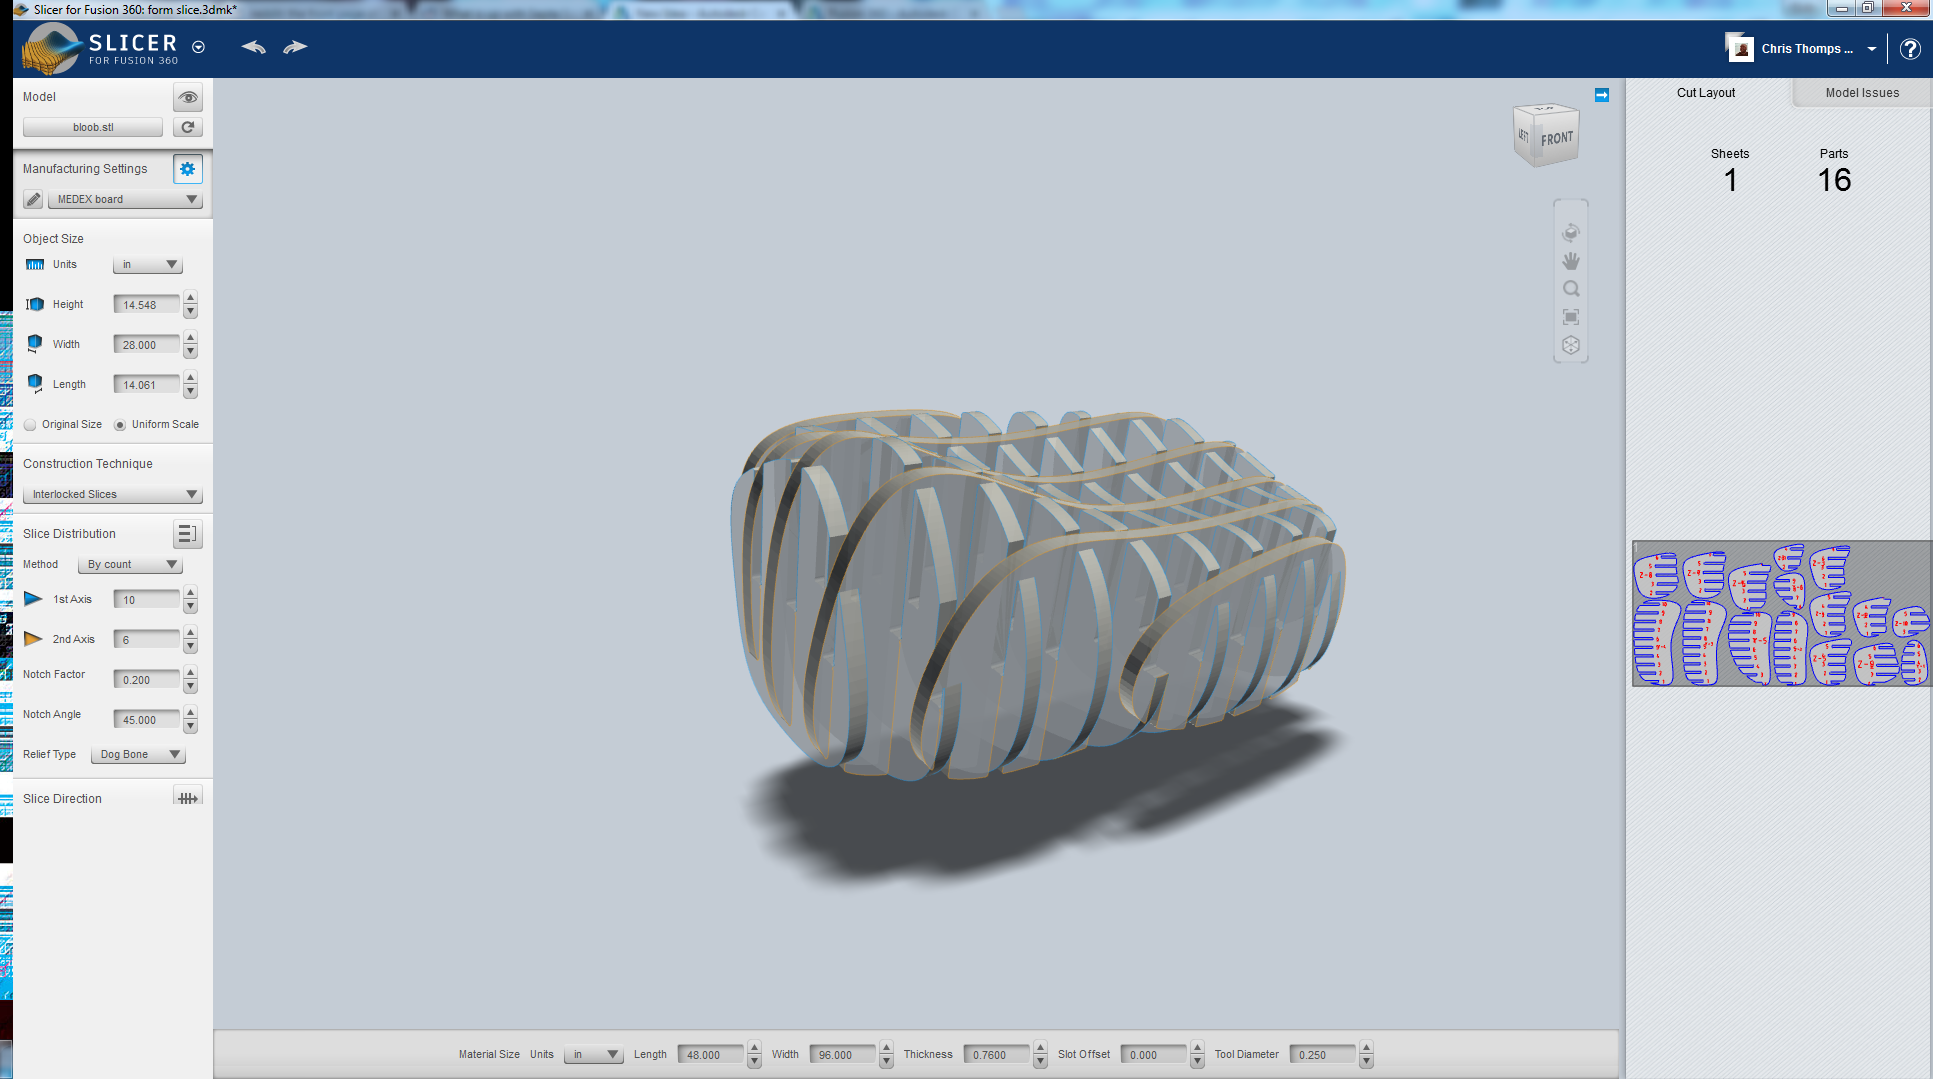 Implement Export and Print in Slicer for fusion 360 - Autodesk Community